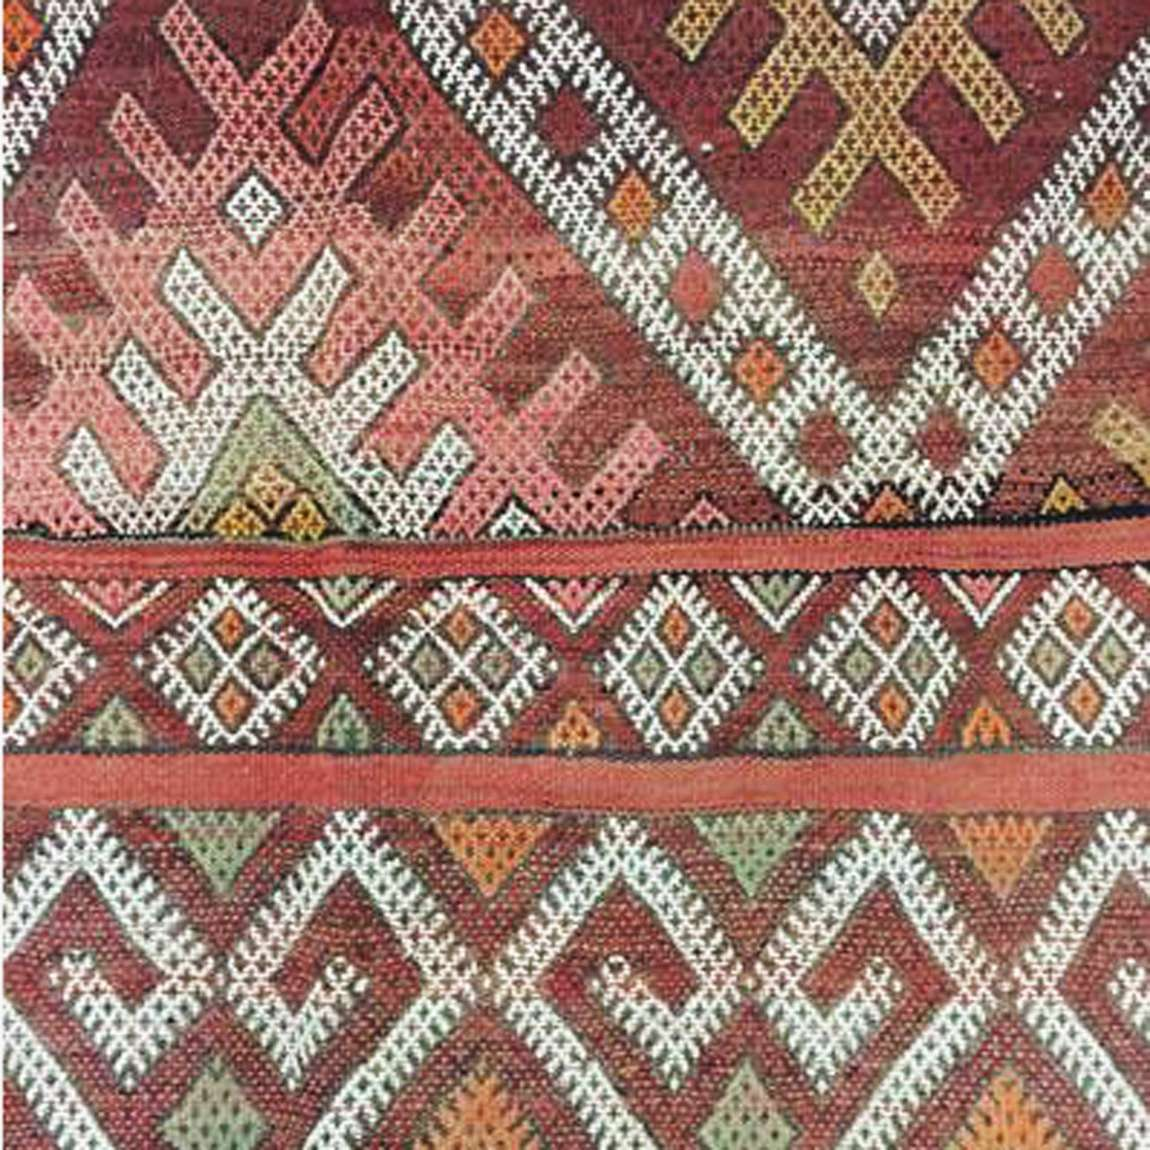 Teppich Vintage Berlin Vintage Kelim Rug Mednin Handmade With Colourful Geometric Patterns